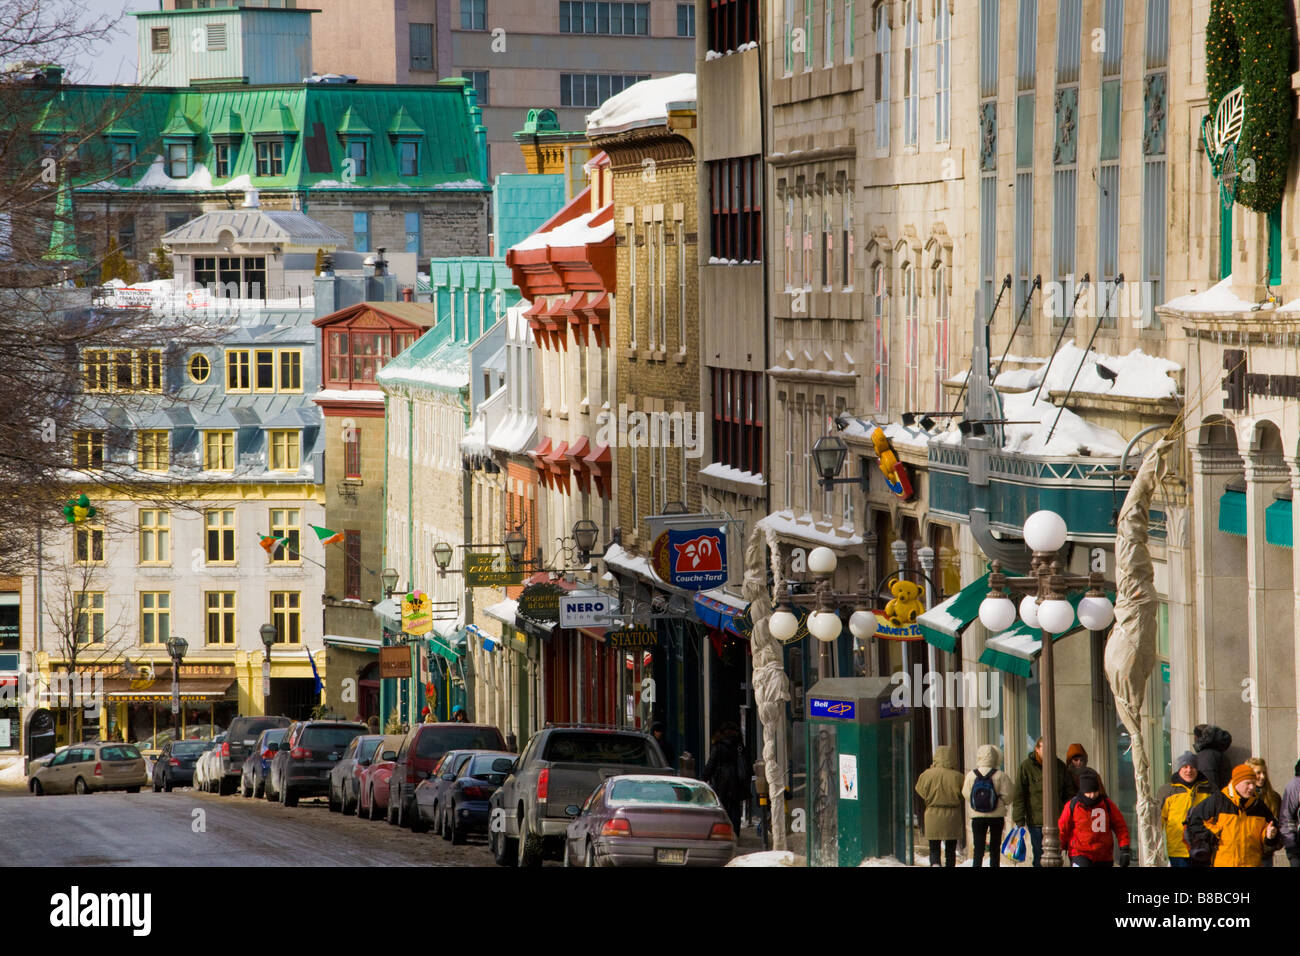 Latin Quarter Old Town Upper Town Quebec city - Stock Image